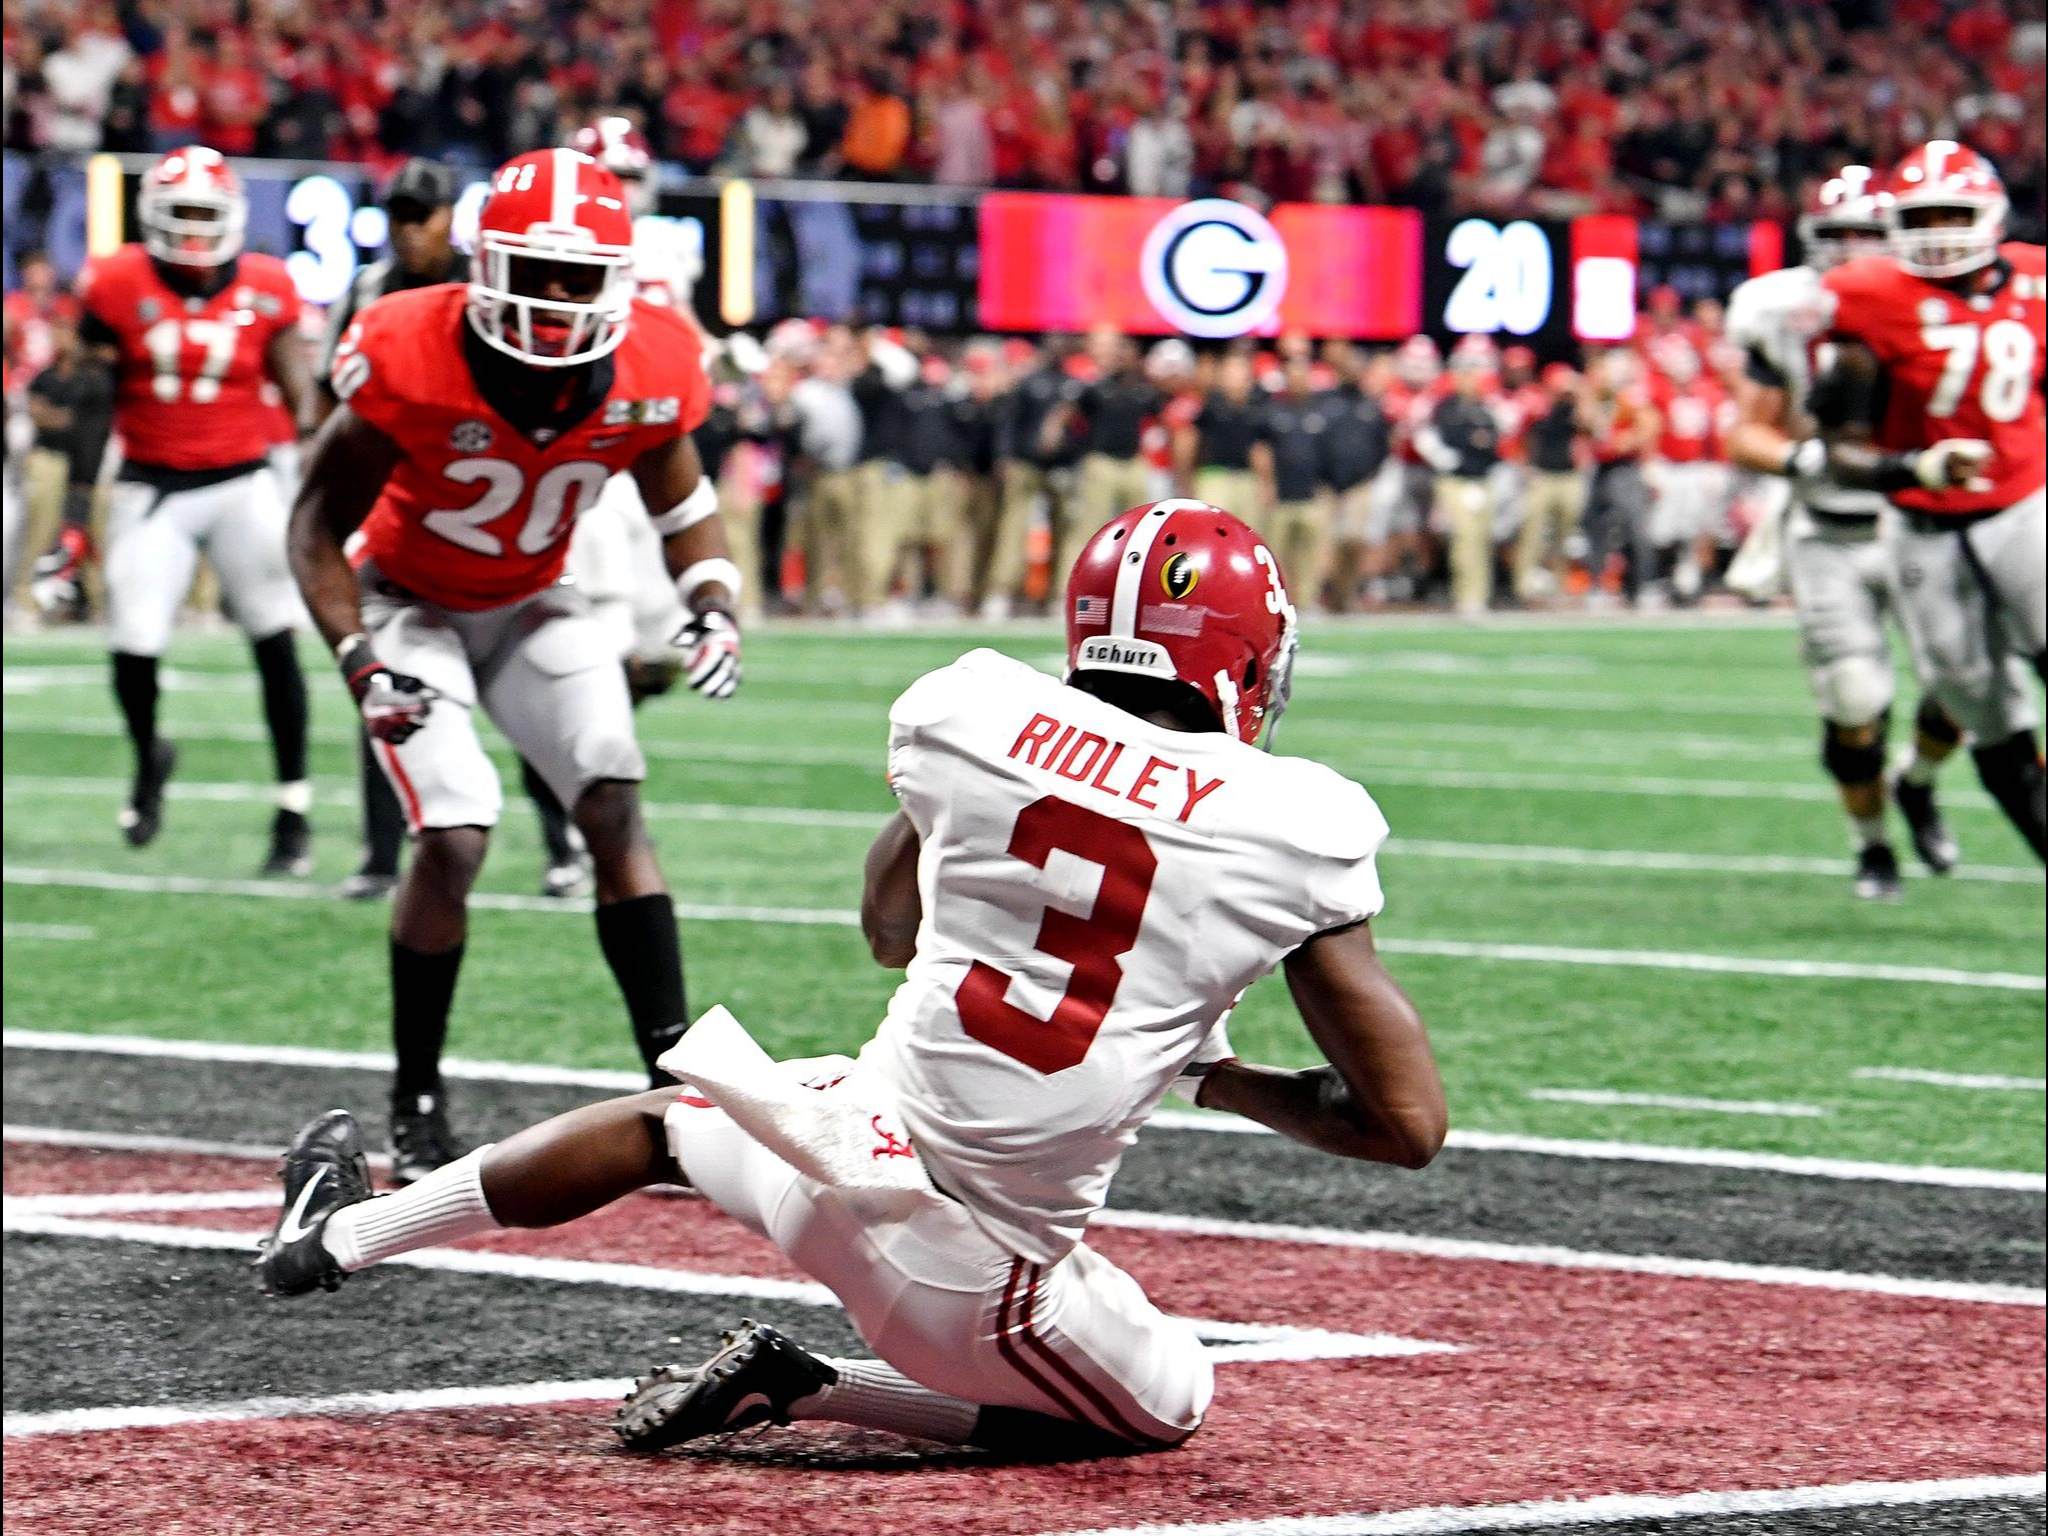 Calvin Ridley Touchdown Usa Today Sports Picture Alabama 26 Georgia 23 In Ot Alab Alabama Crimson Tide Football Crimson Tide Football Alabama Crimson Tide